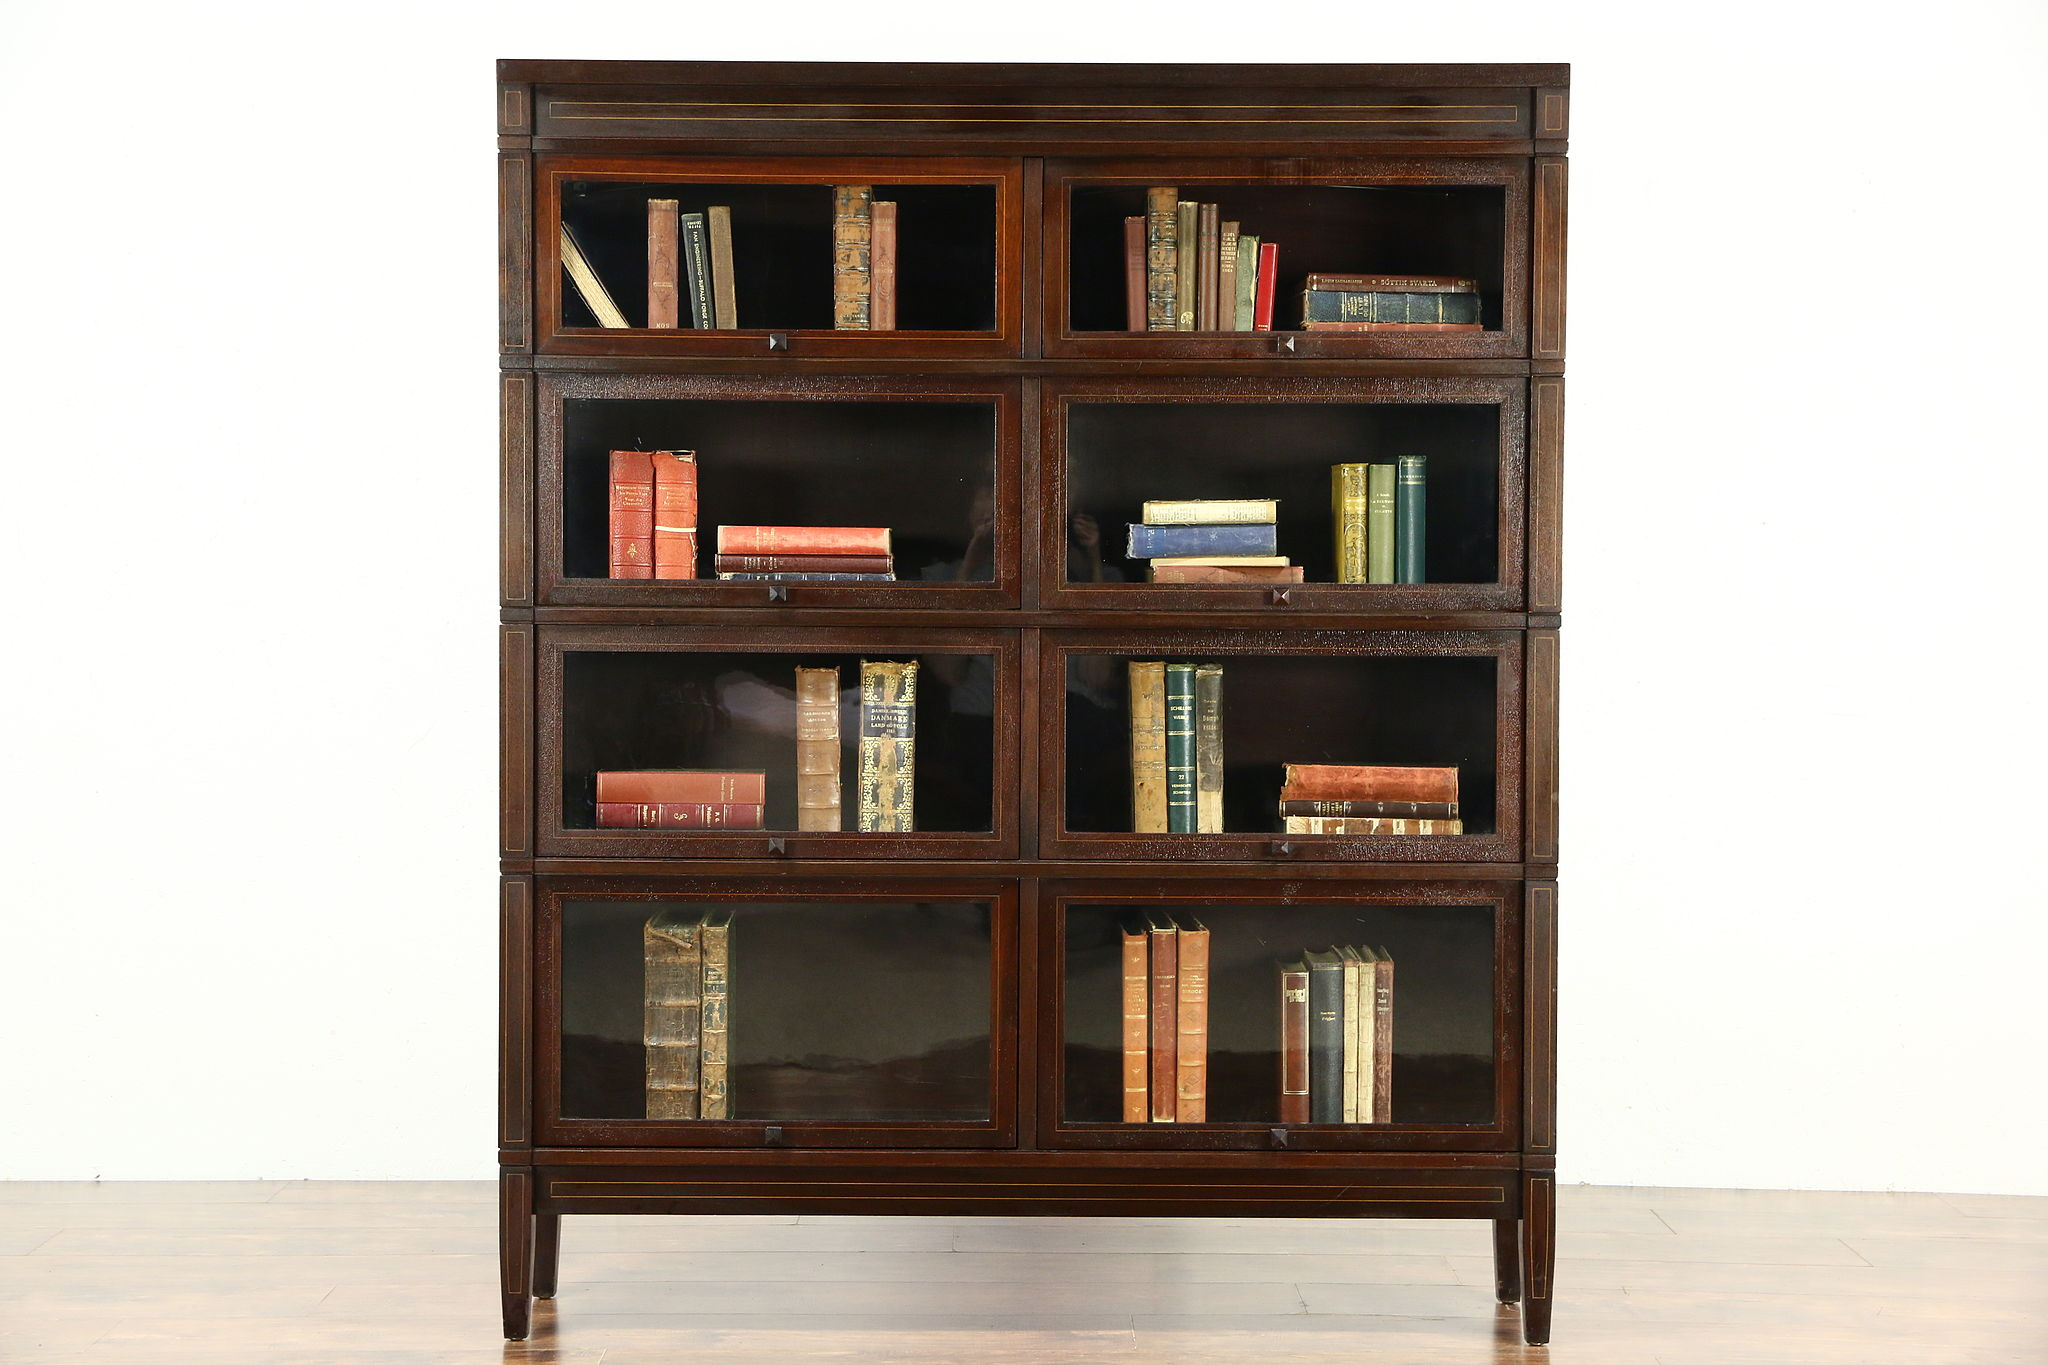 put bookcases antique neat lawyer white in metal with barrister glass furniture bookshelves your doors belongings bookcase way shaker